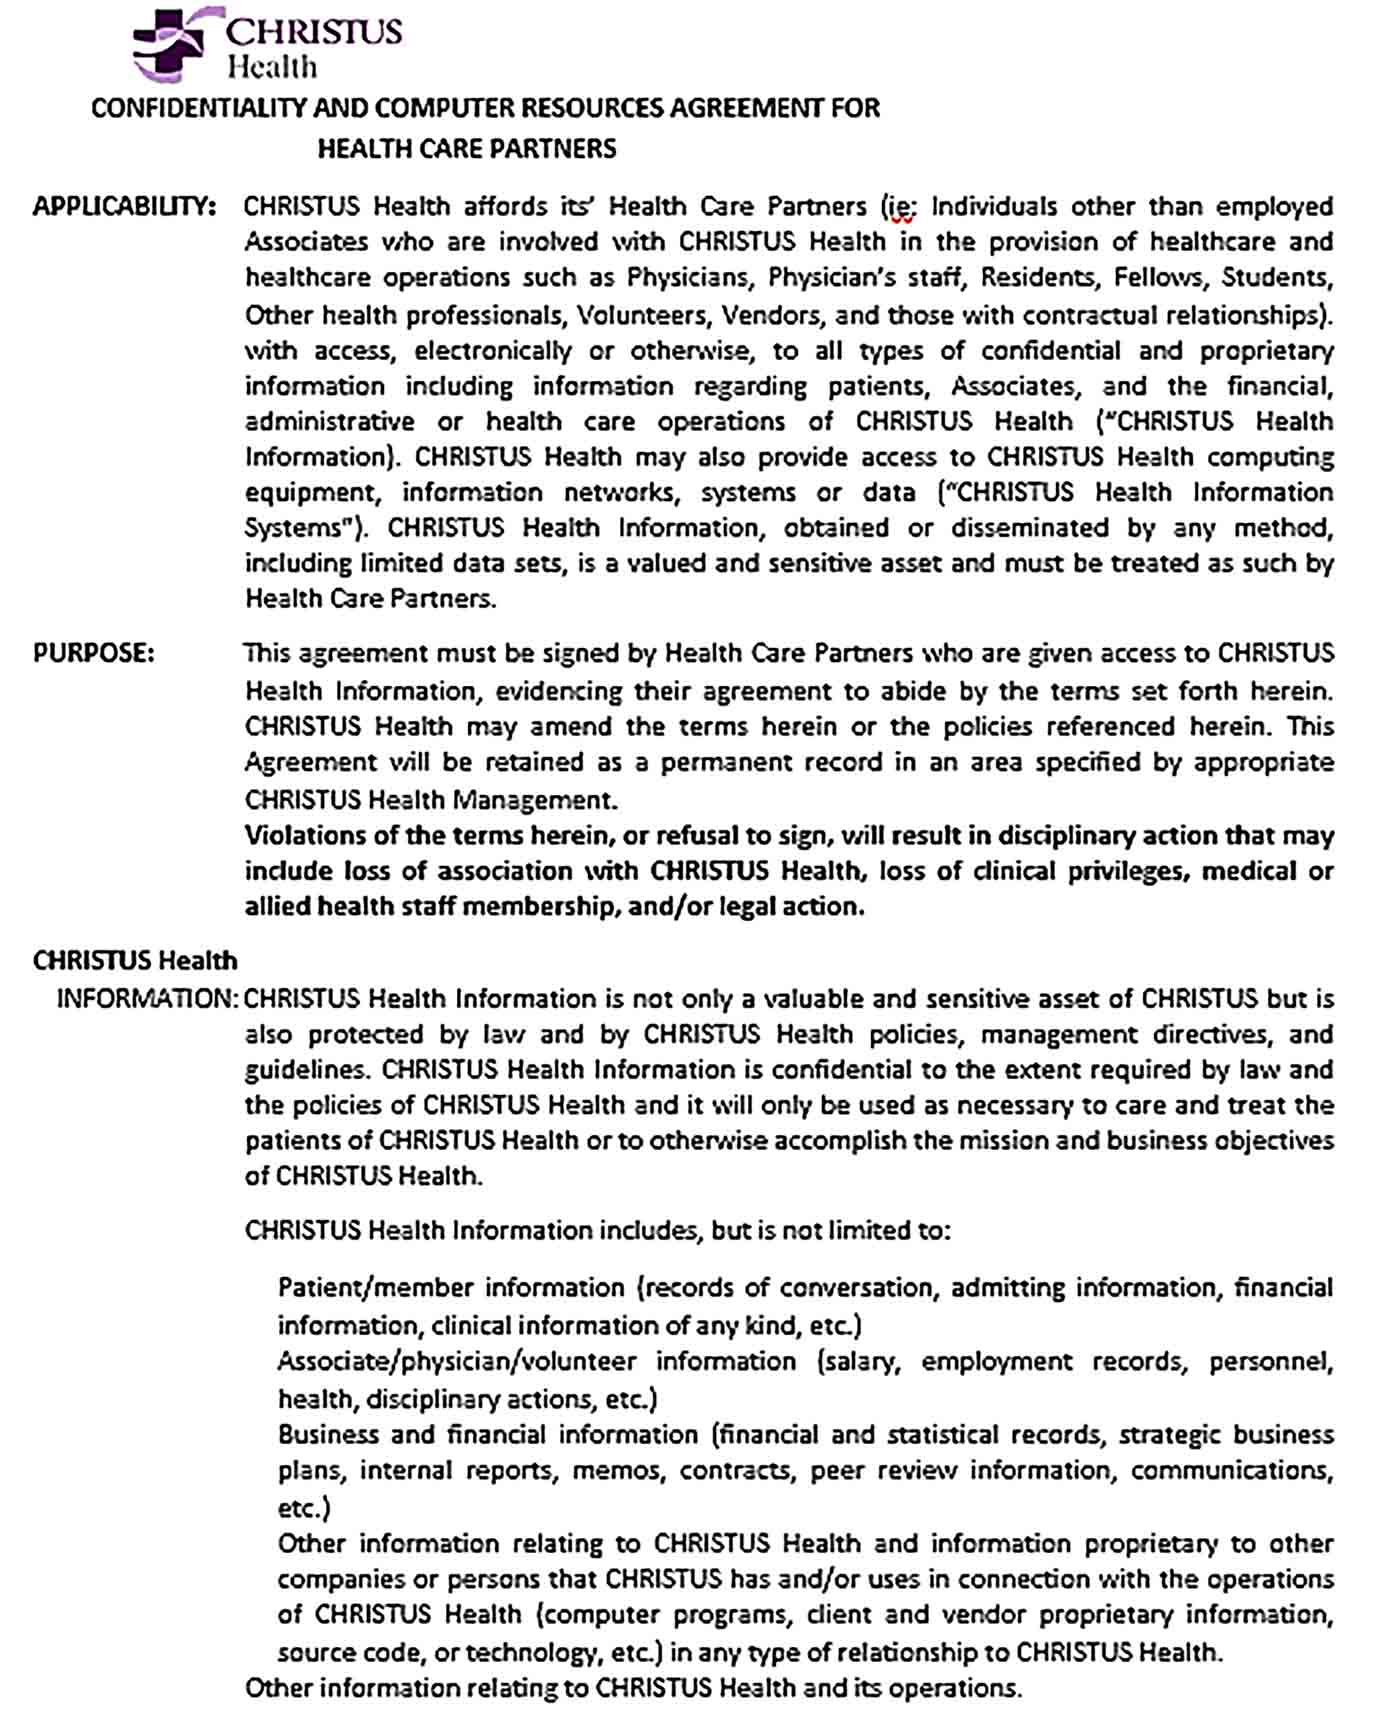 Sample Confidentiality and Computer Resources Agreement